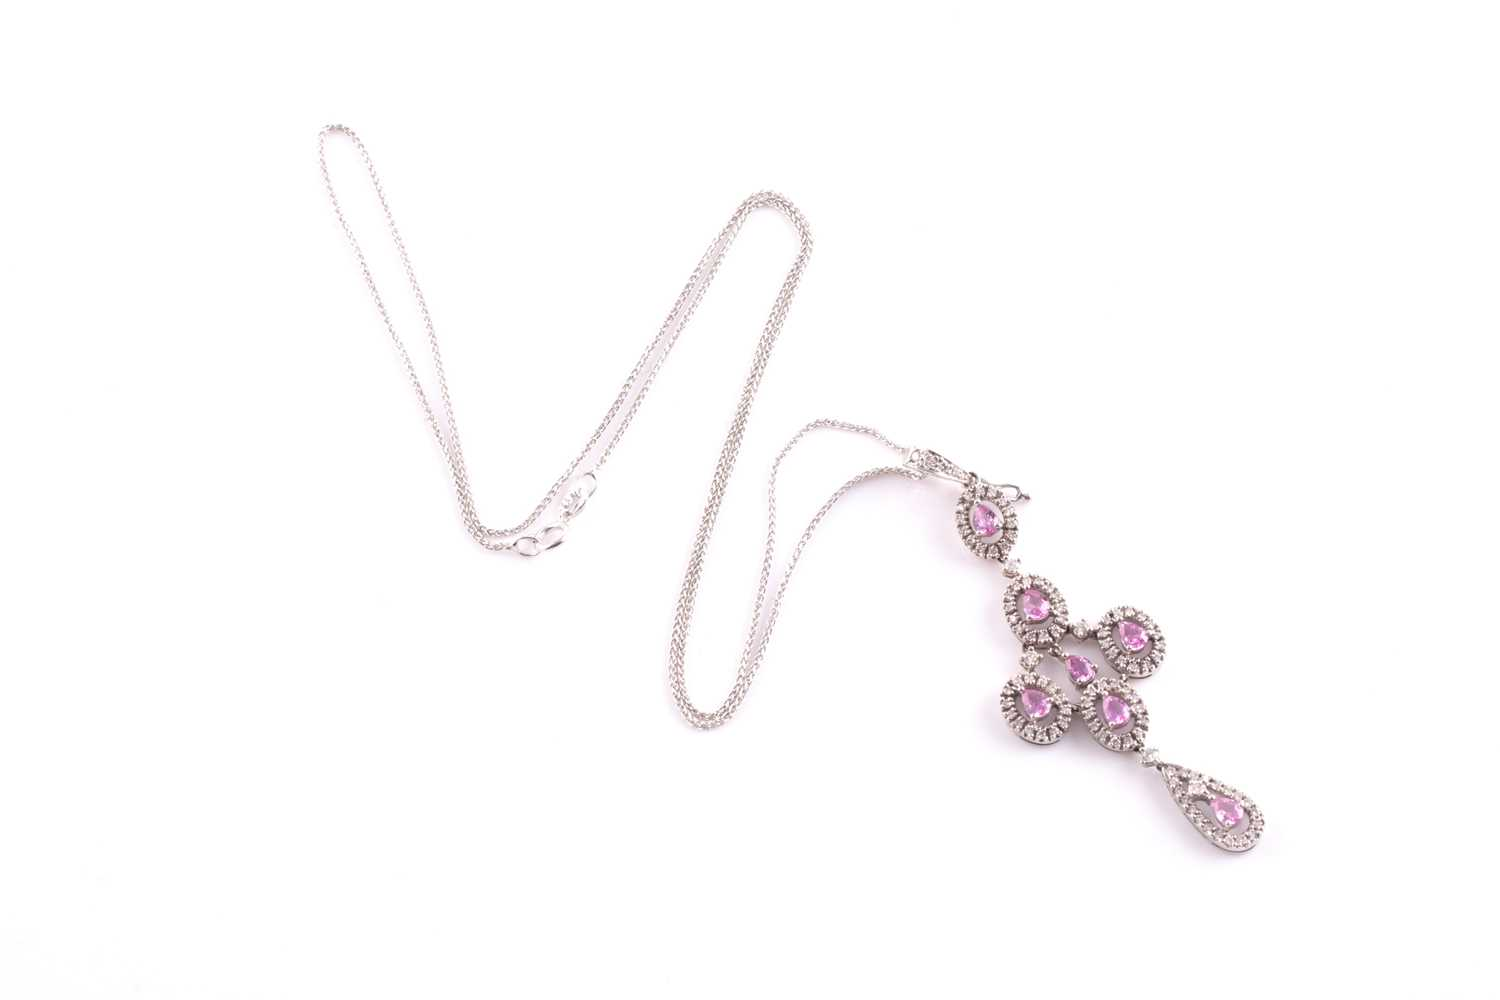 An 18ct white gold, diamond, and pink sapphire quatrefoil drop pendant necklace, the cross design - Image 4 of 4